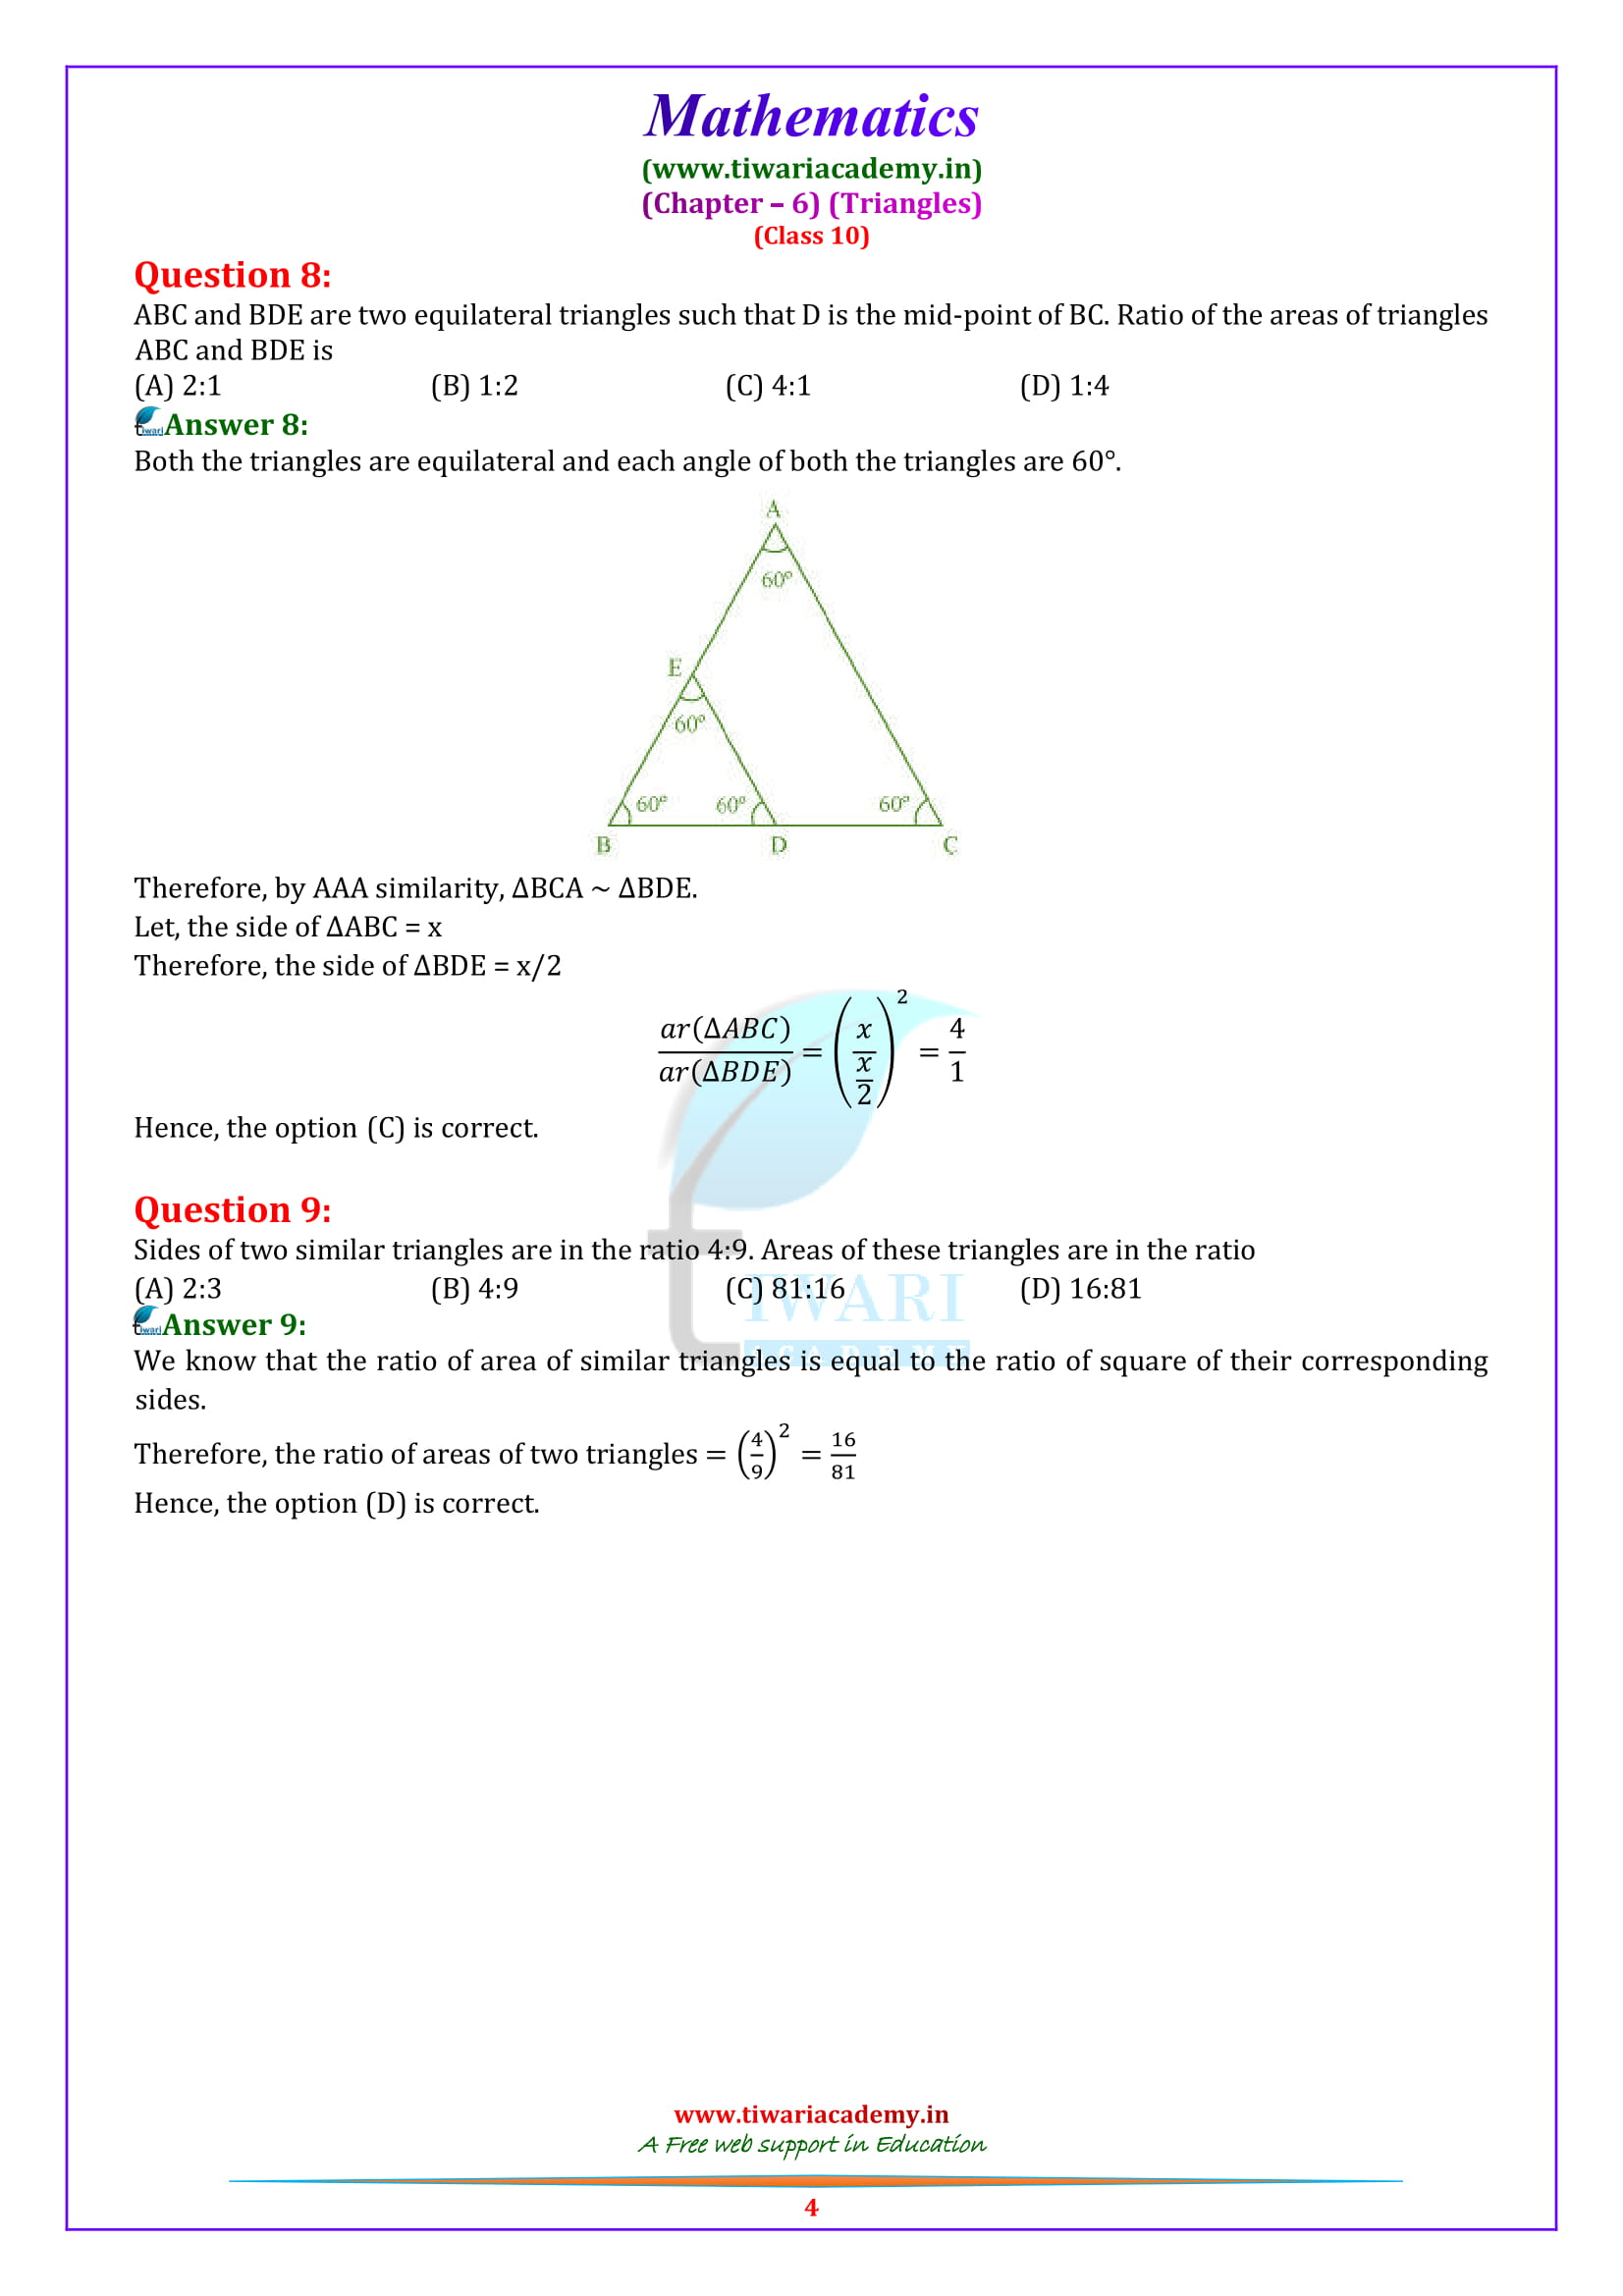 10 Maths Exercise 6.4 solutions free to download as pdf